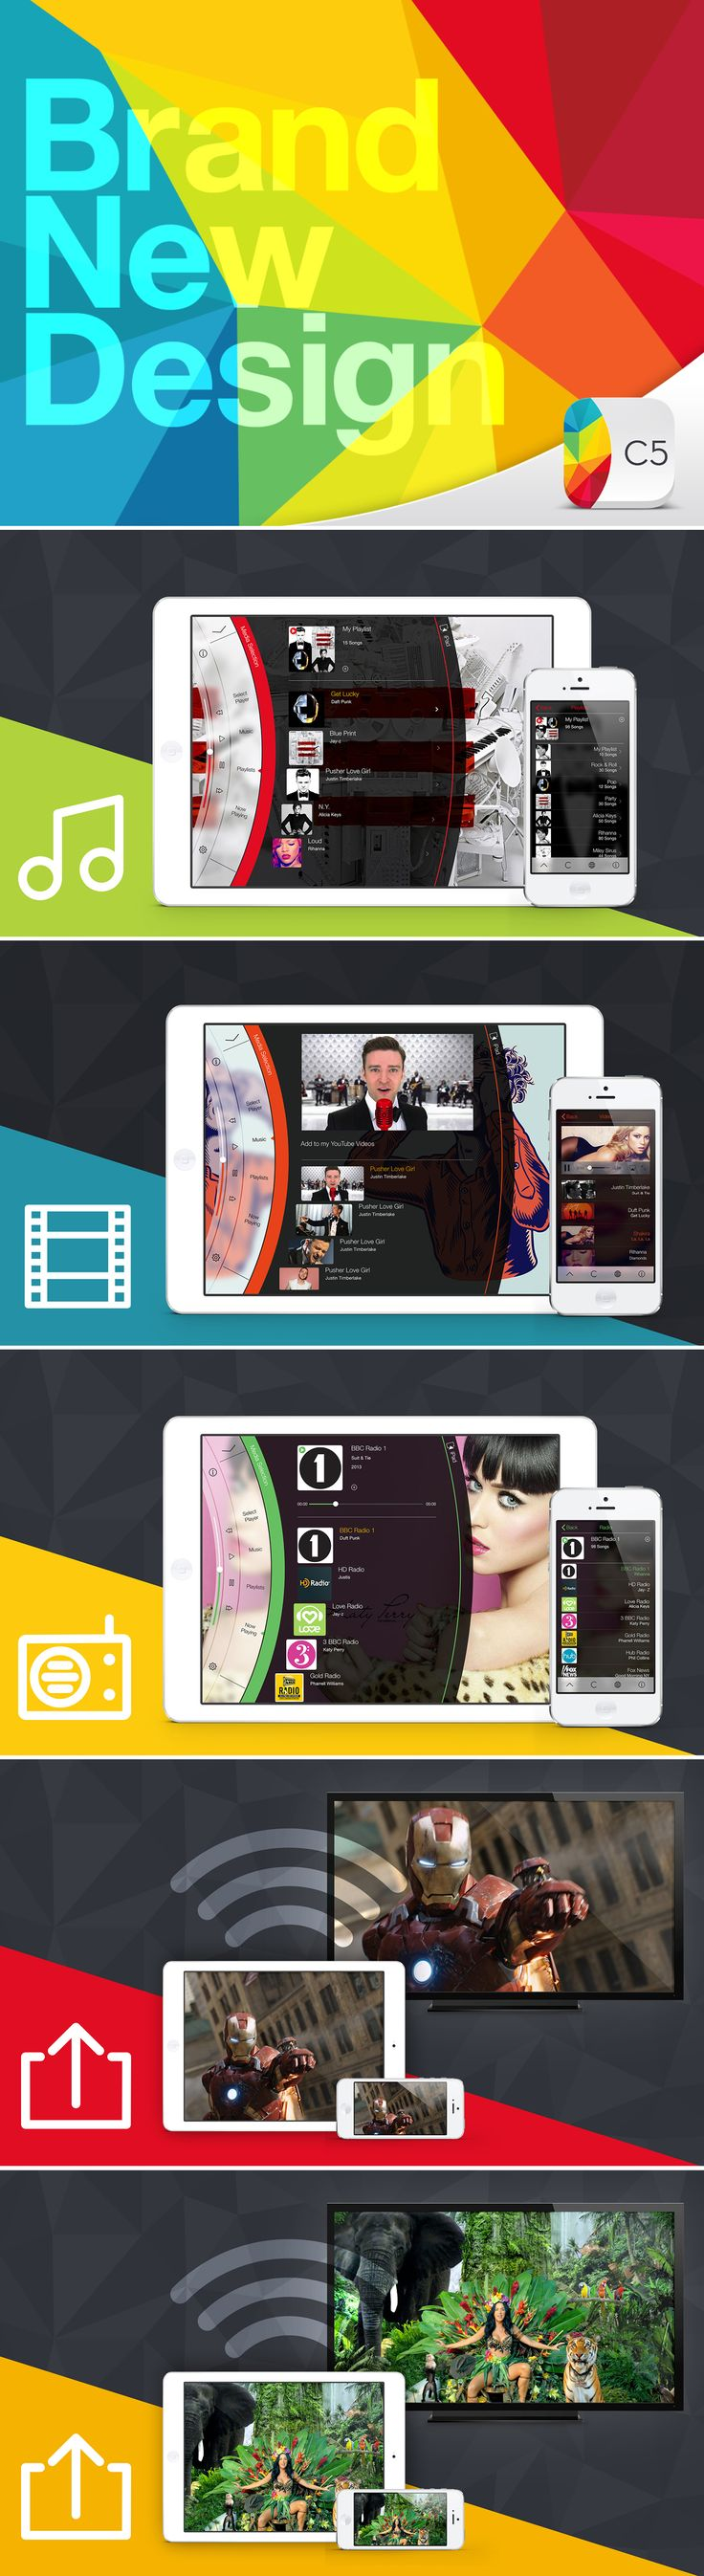 Brand New Design! 5 apps in one! Music, Radio, Video, Rdio, DLNA /Airplay from one single #iOSApp